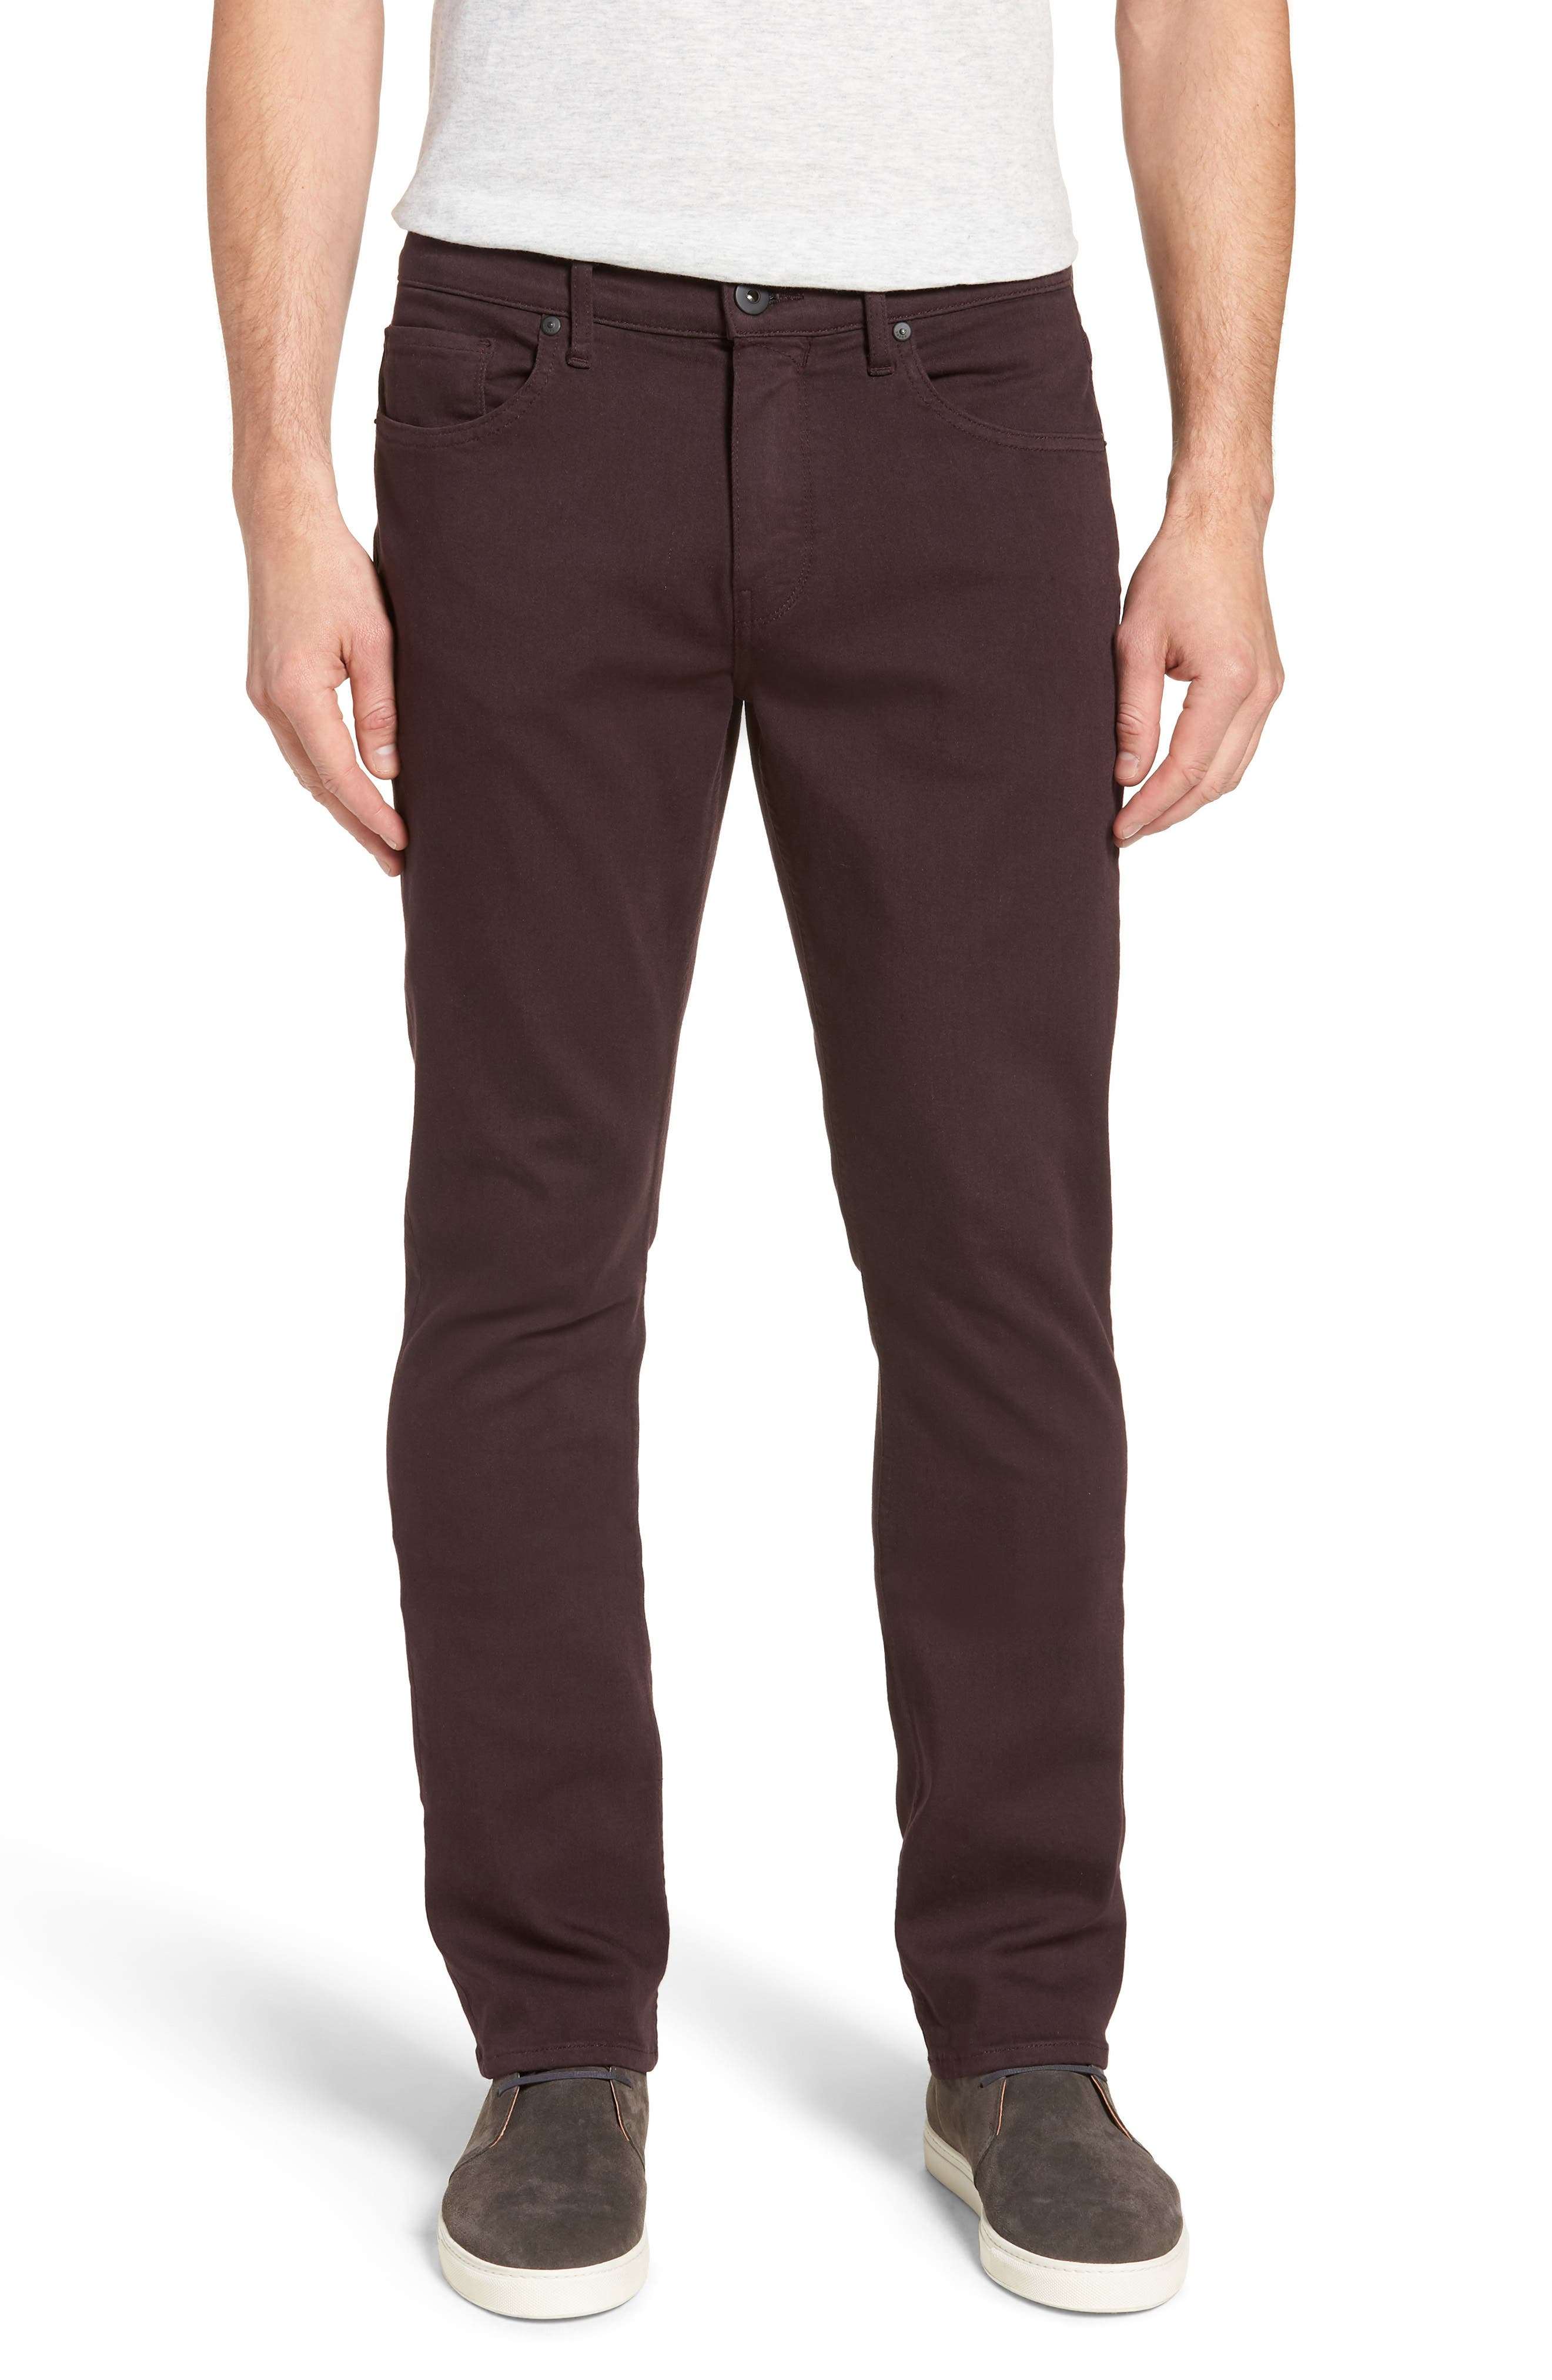 Transcend - Federal Slim Straight Fit Jeans,                             Main thumbnail 1, color,                             DARK PORT